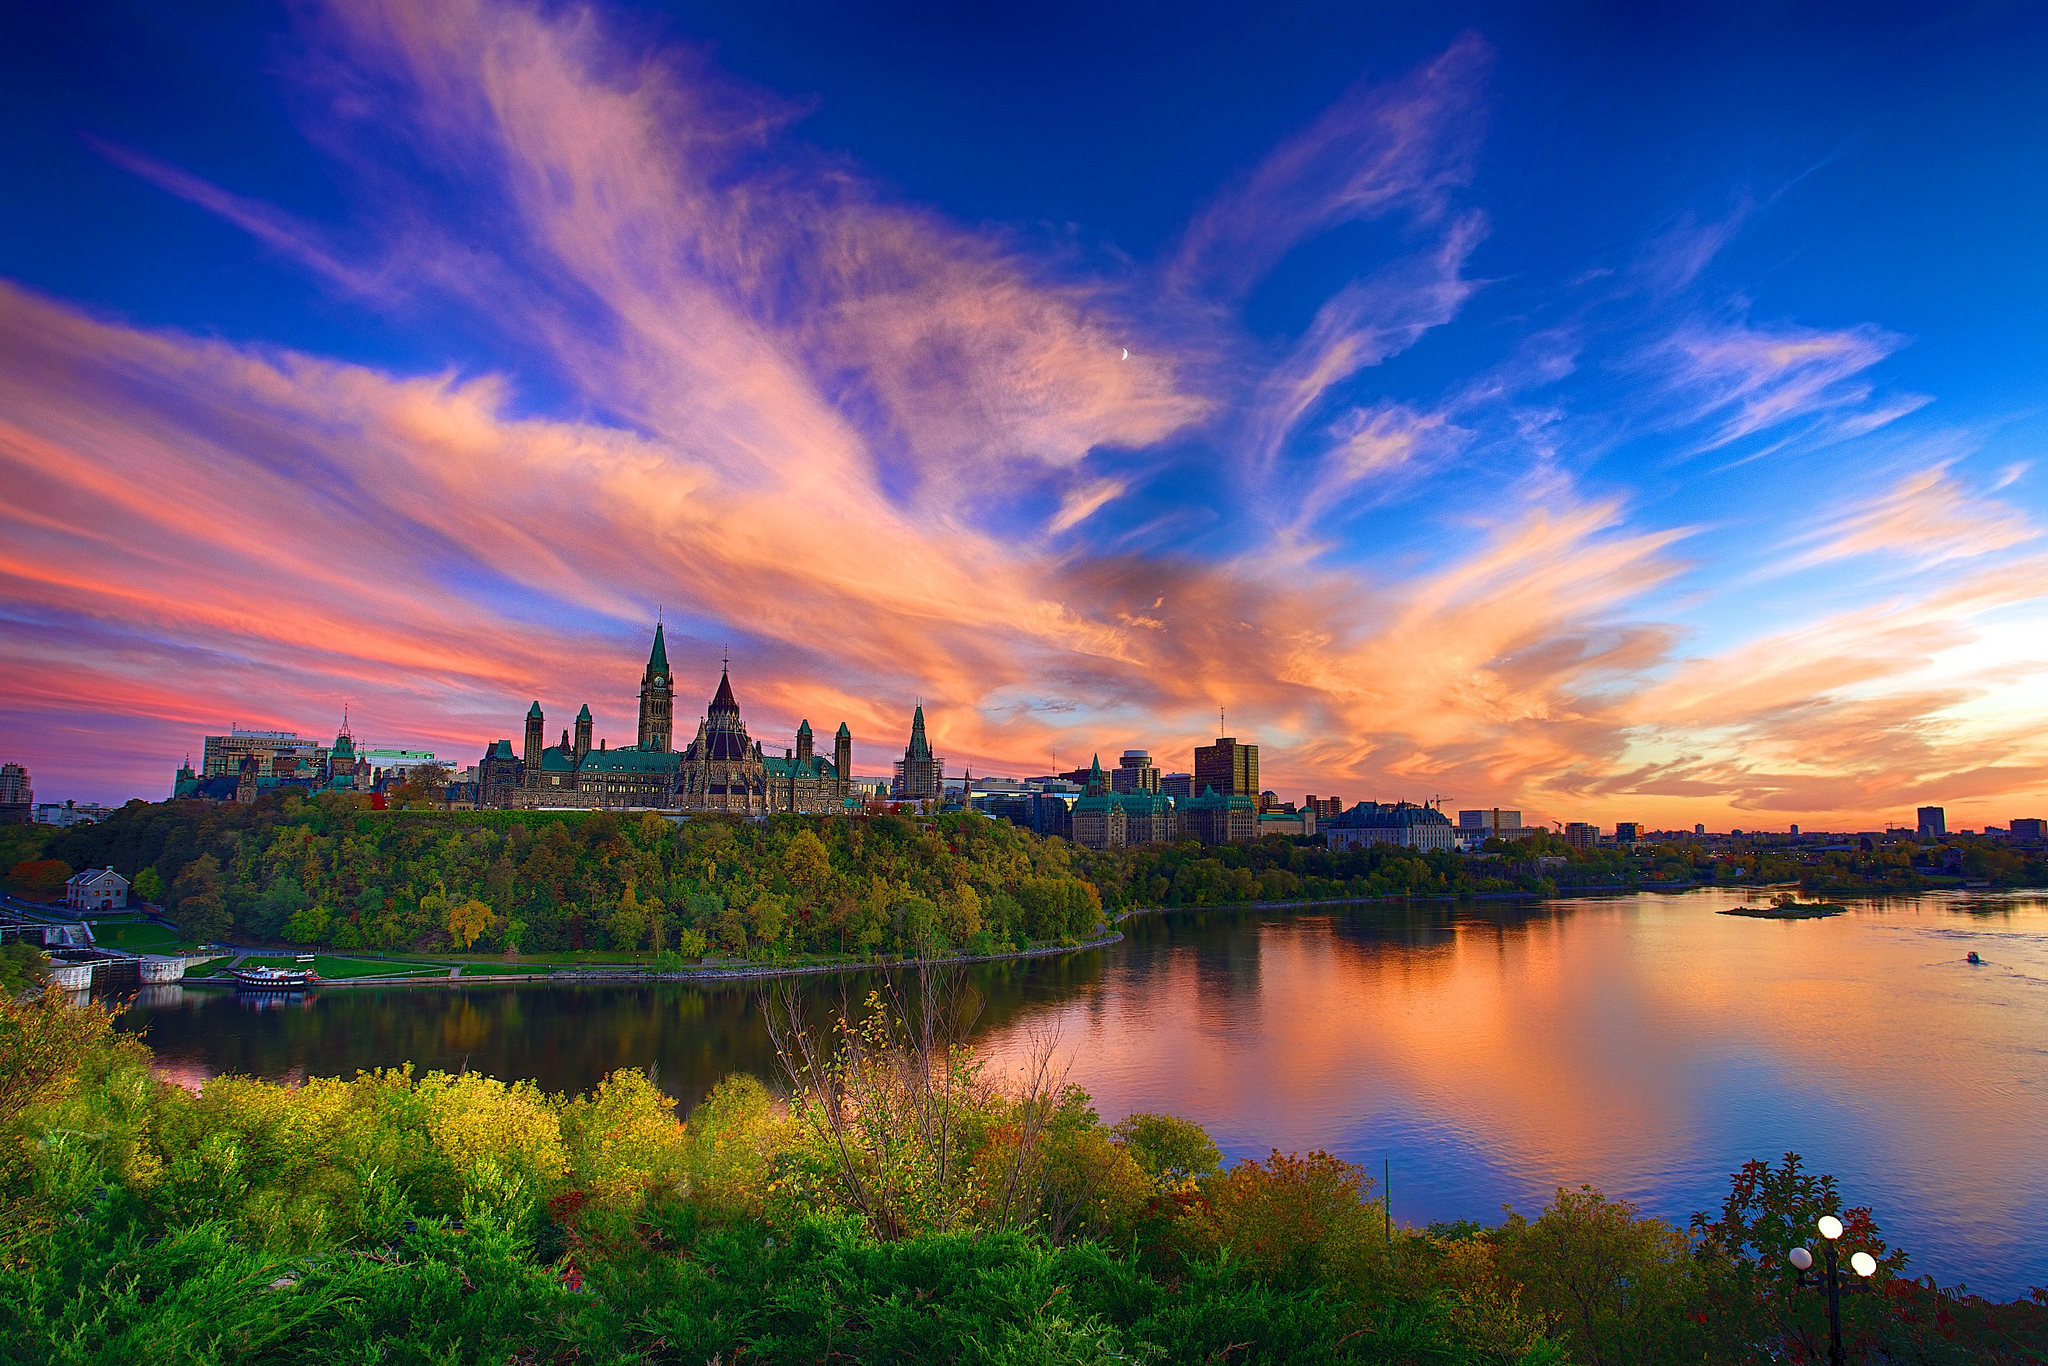 Sunset over parliament hill in canada hd wallpaper for Immagini hd desktop